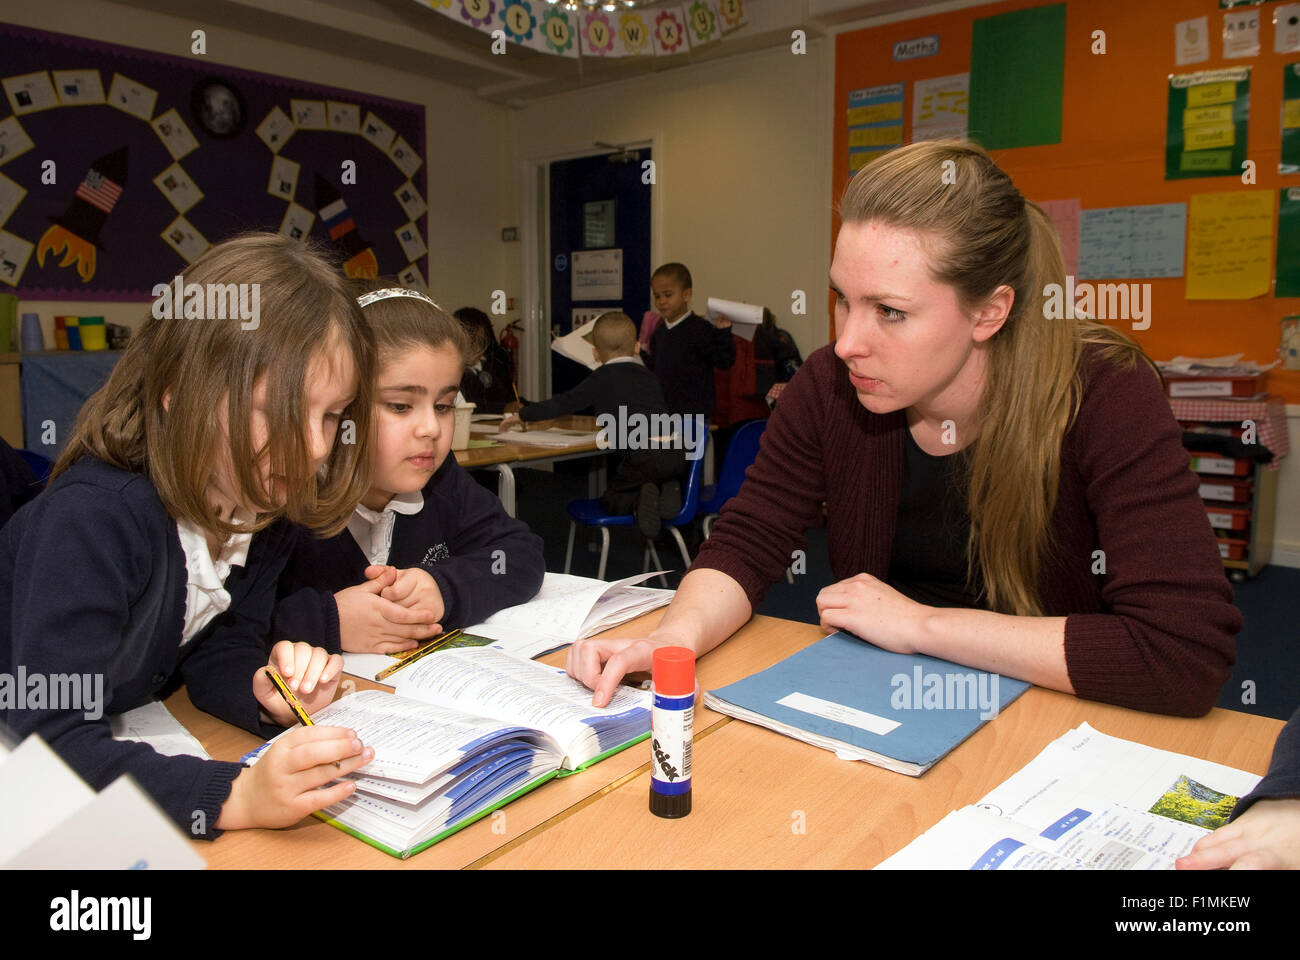 Primary school teacher helping pupil's in class, London, UK. - Stock Image